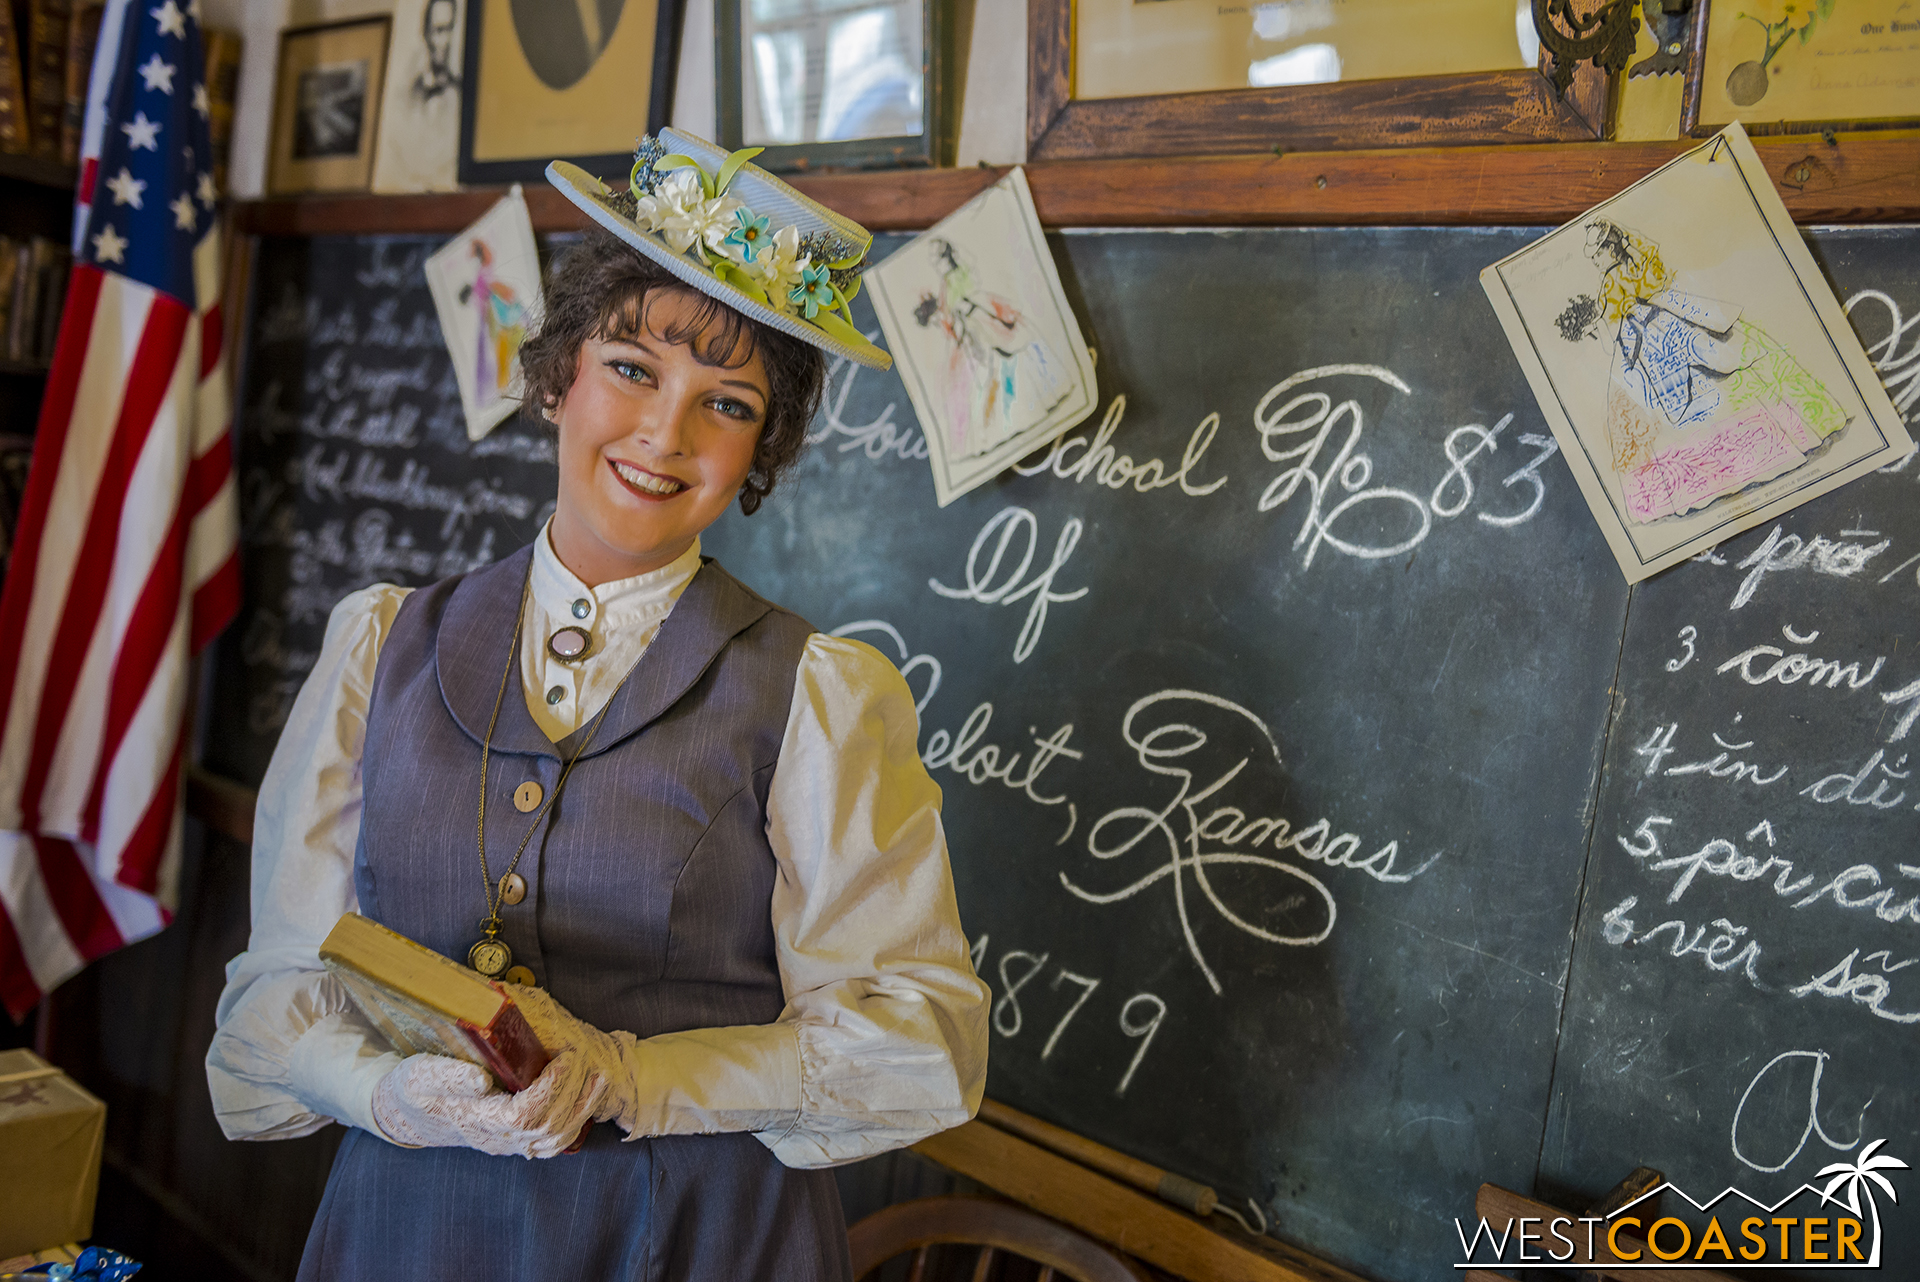 Meanwhile, Maggie Mills is the head schoolteacher in the Schoolhouse itself.